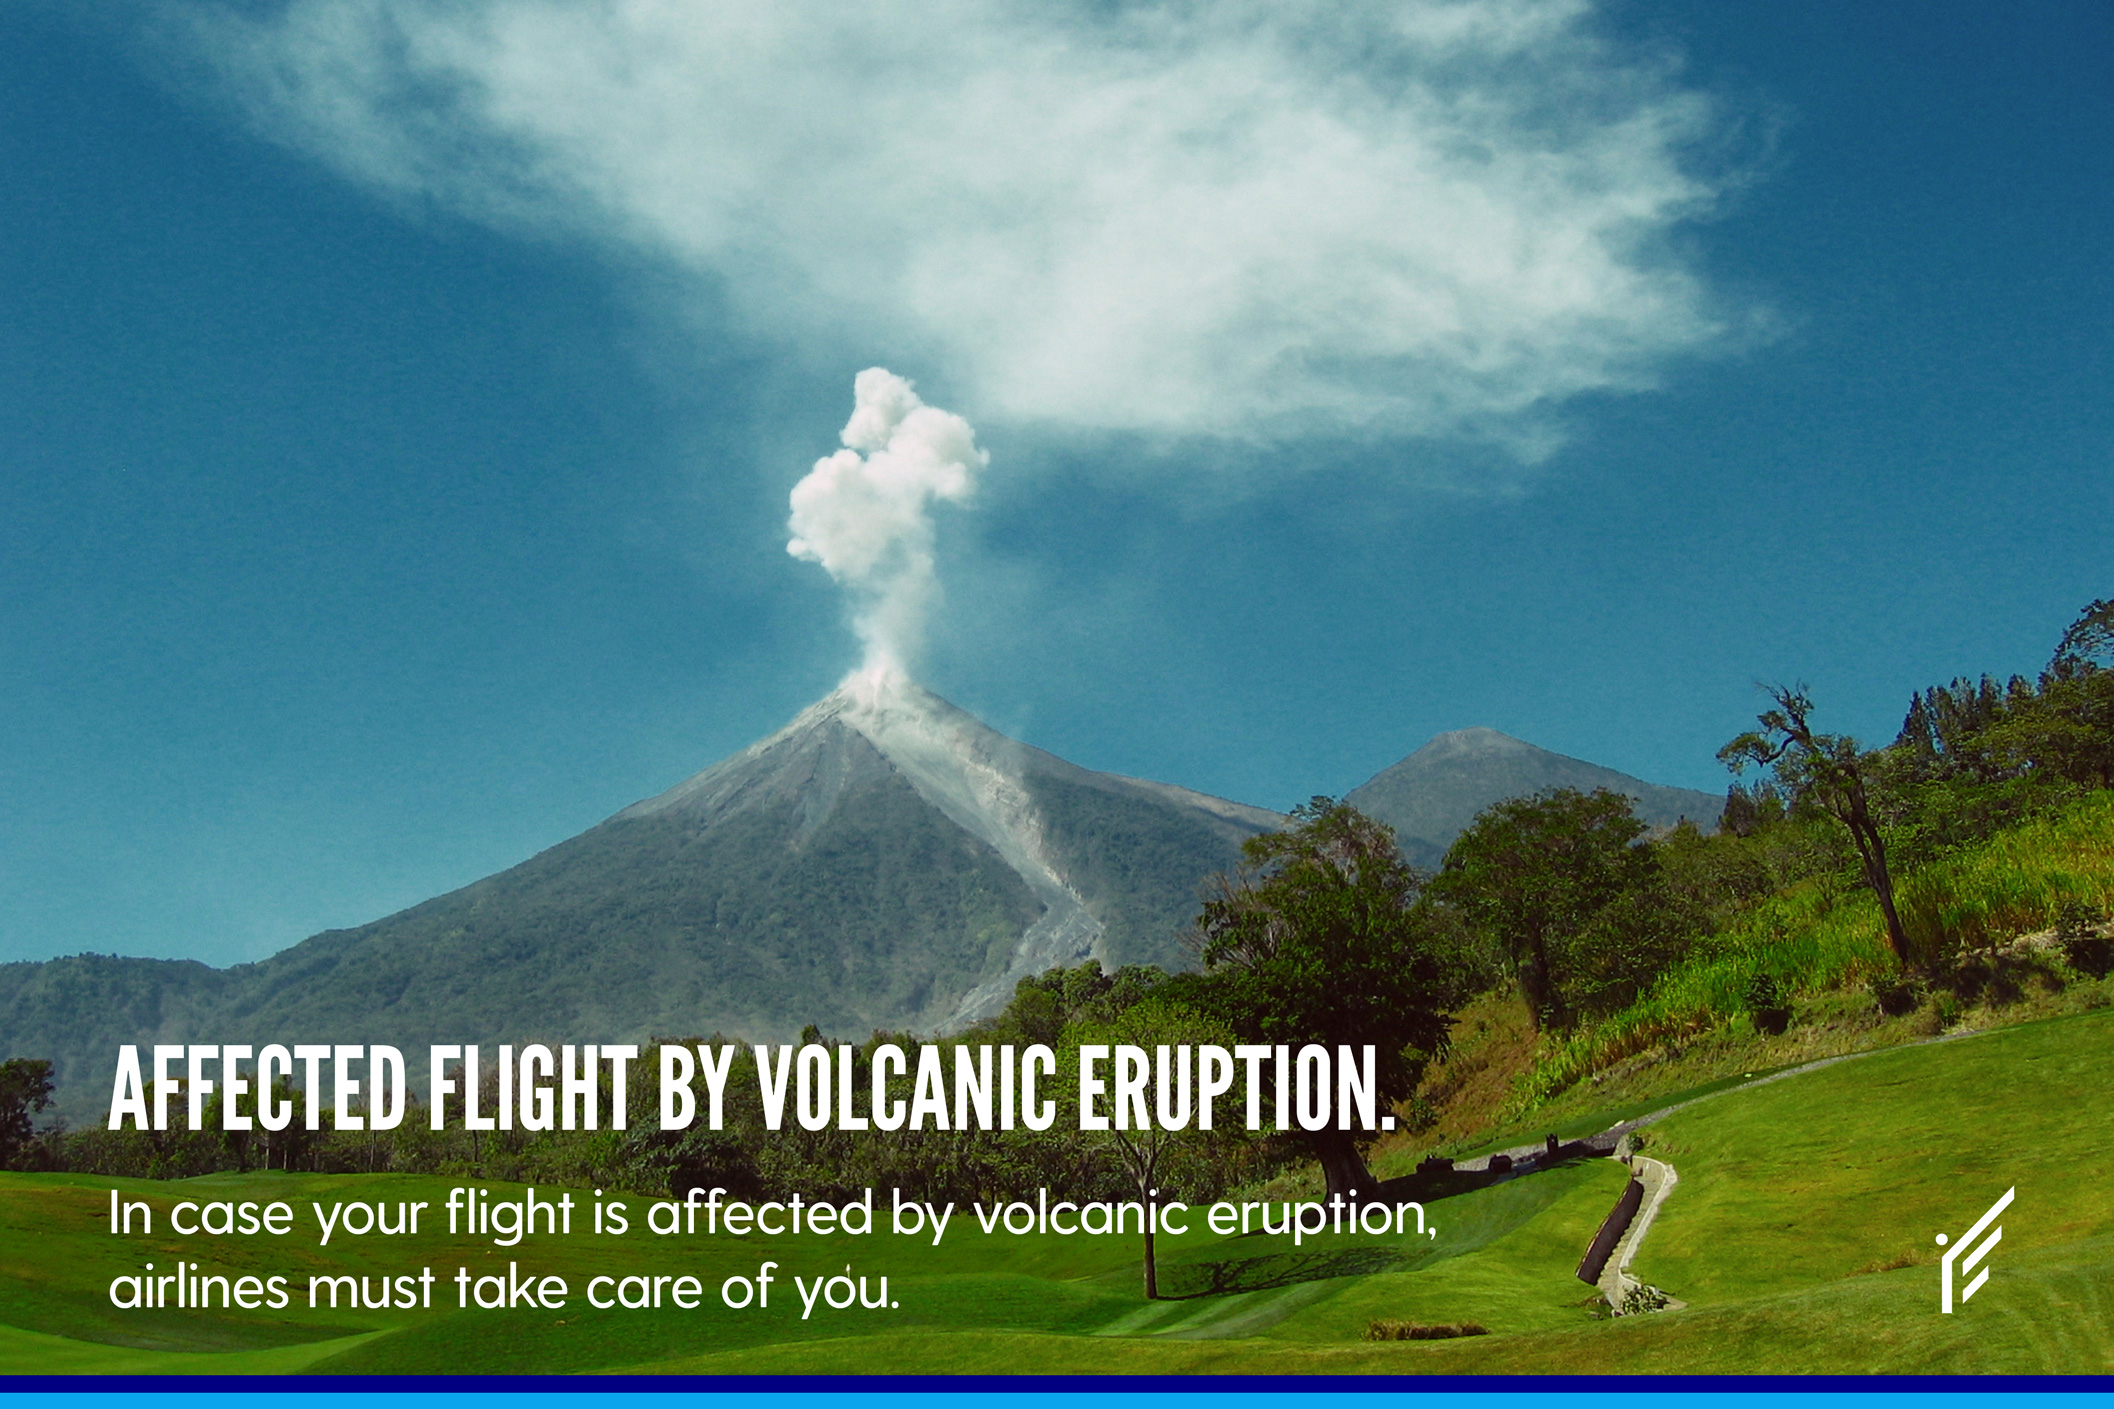 In case your flight is affected by volcanic eruption, airlines must take care of you